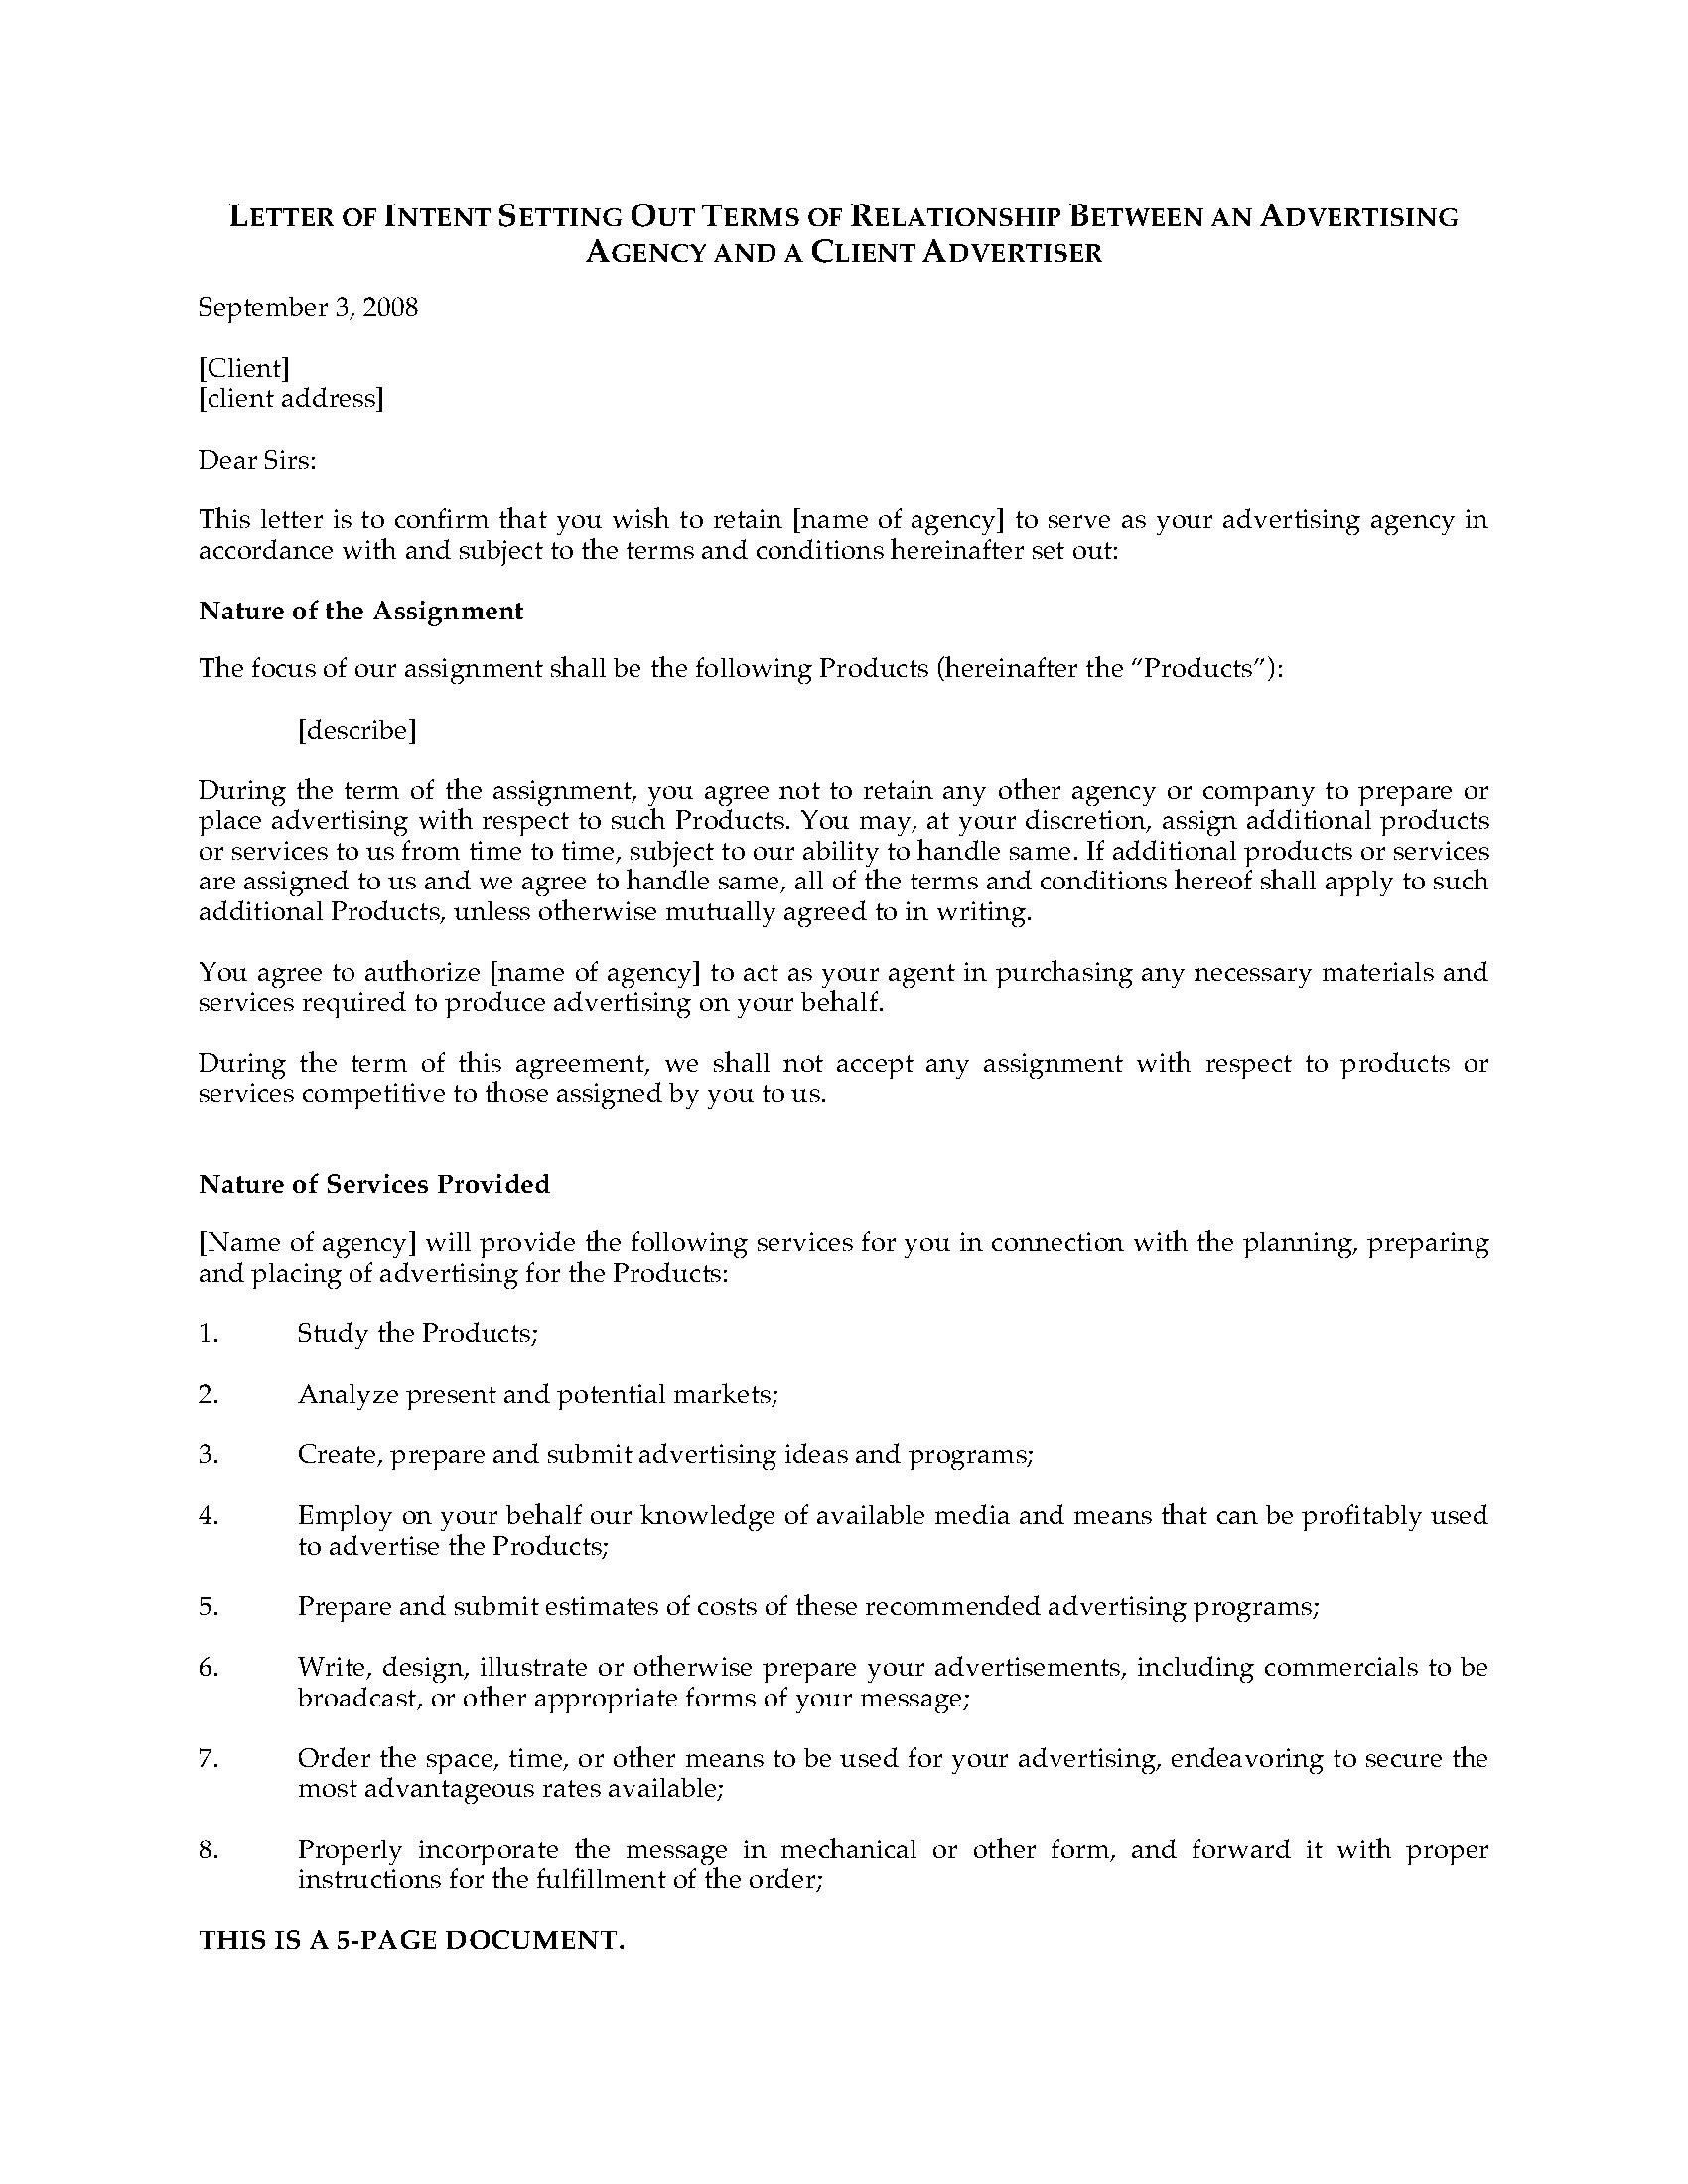 Letter Of Intent to Rent Template - Letter Intent to Hire Template